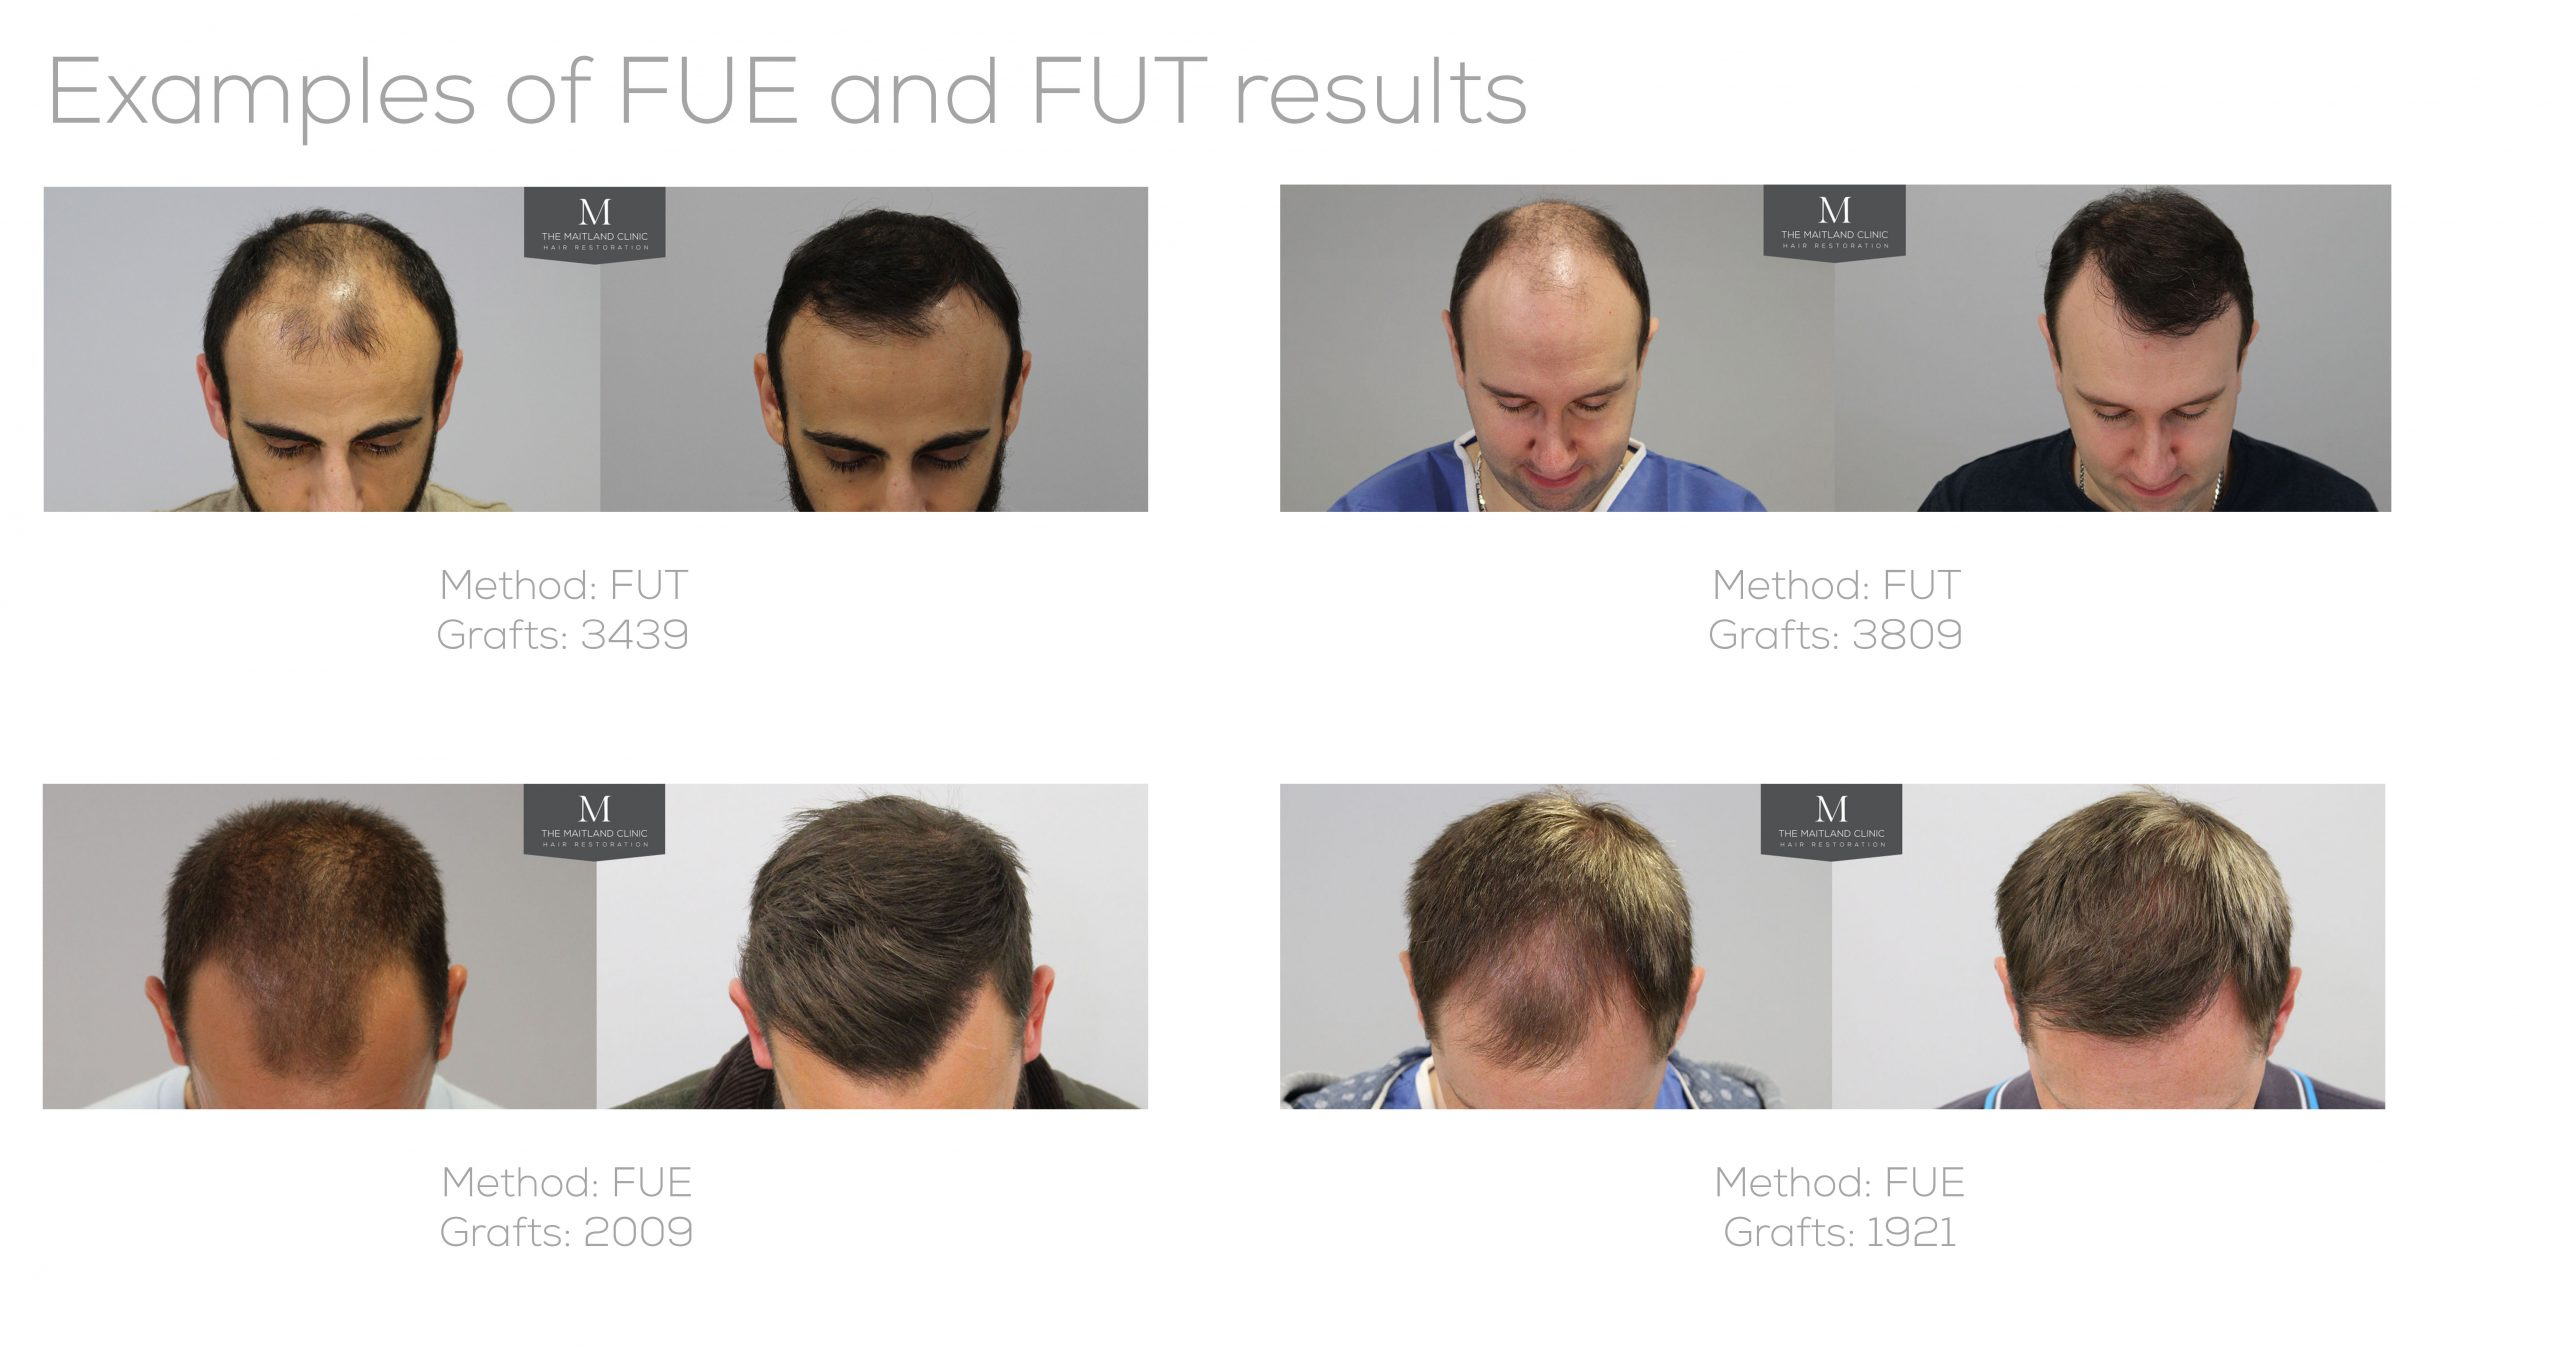 The difference between FUE and FUT hair transplant